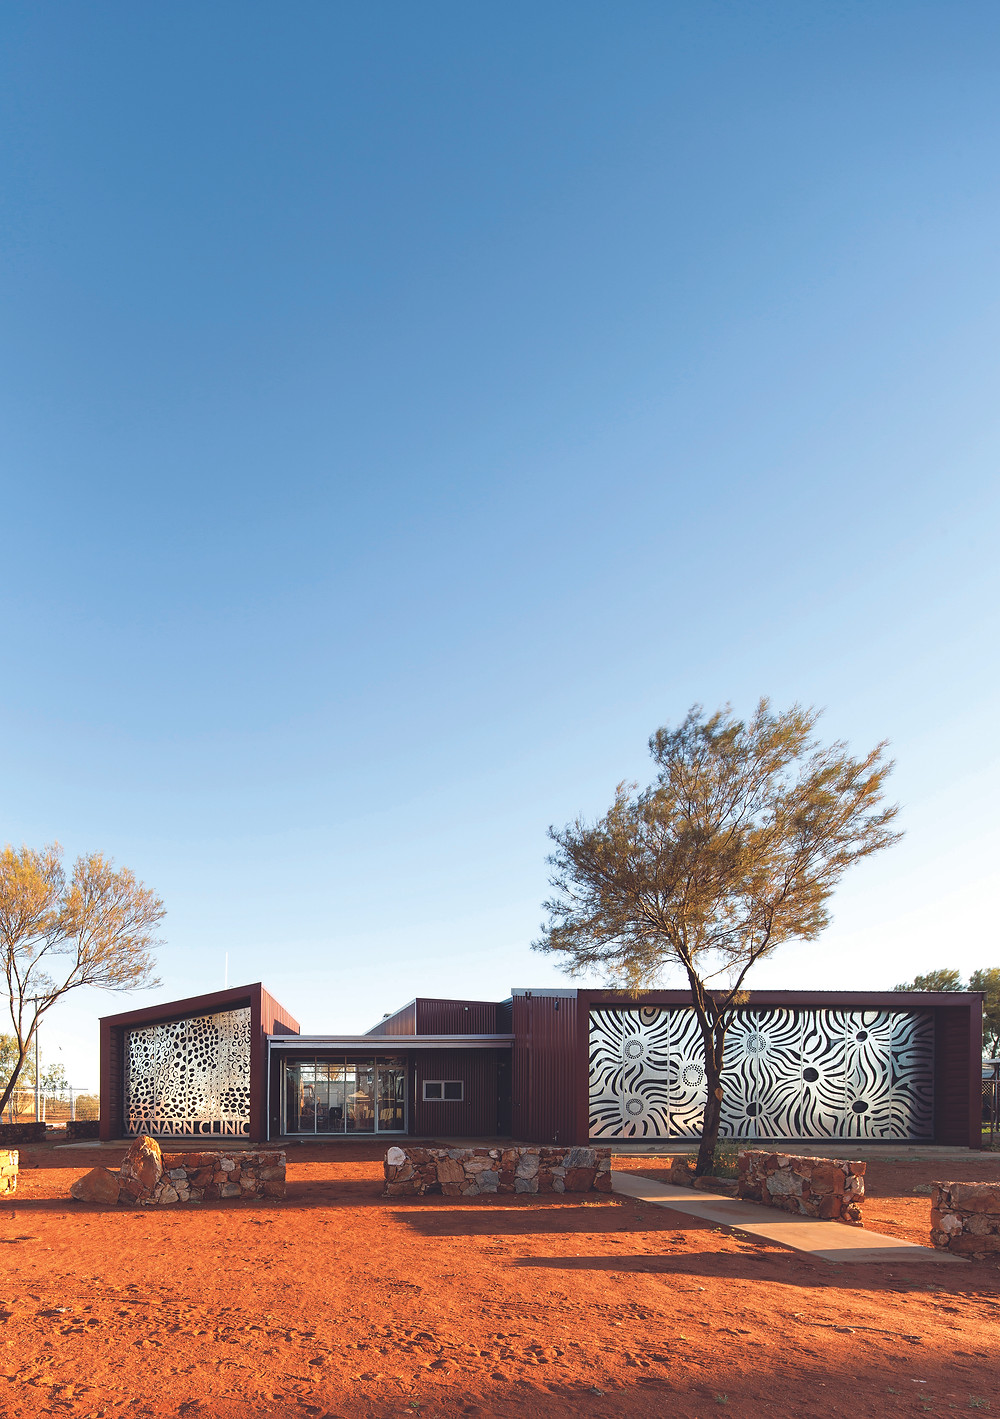 Building exterior in Western Australia desert with artistic wall panels. The Wanarn Clinic is a treatment venue operated by the Ngaanyatjarra Health Service in Western Australia. Located in the desert, the facility needed to be able to resist high temperatures and dusty conditions but, because of limited resources, operate at a low cost.